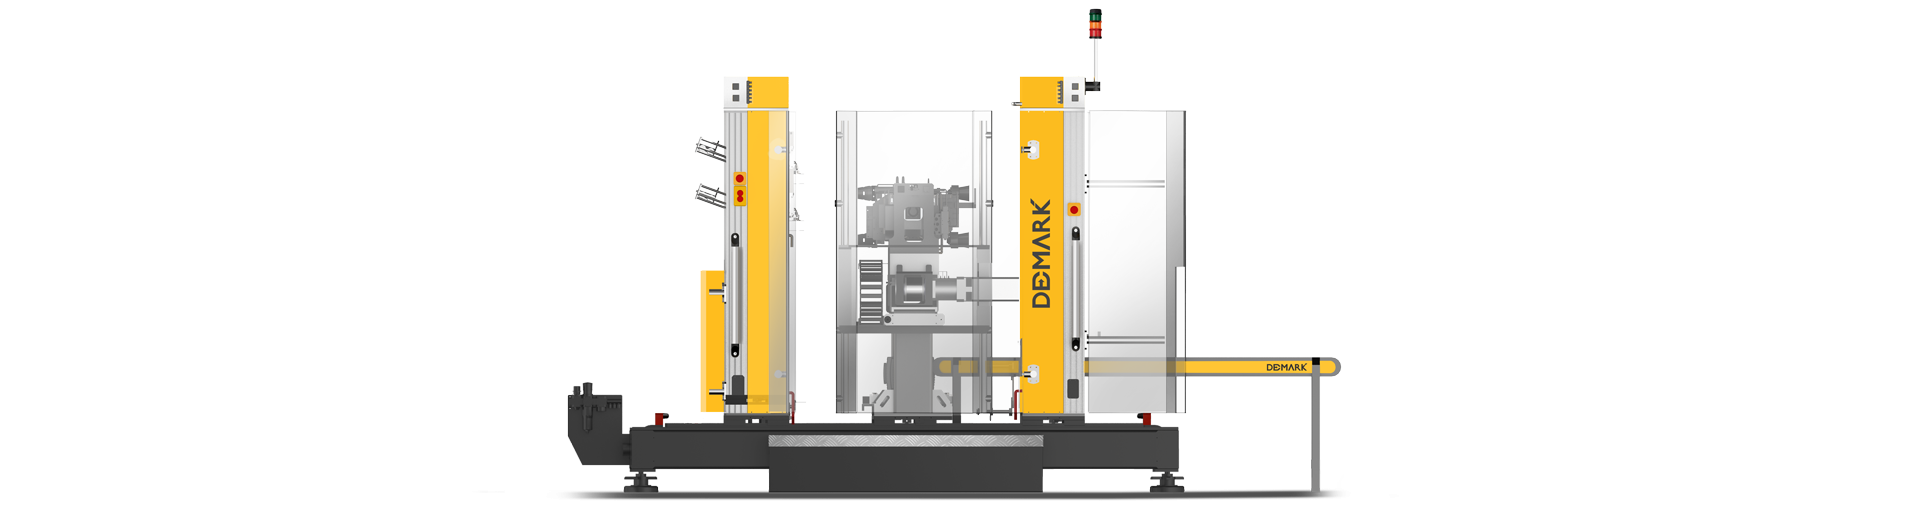 In-mold Labeling Machine Image